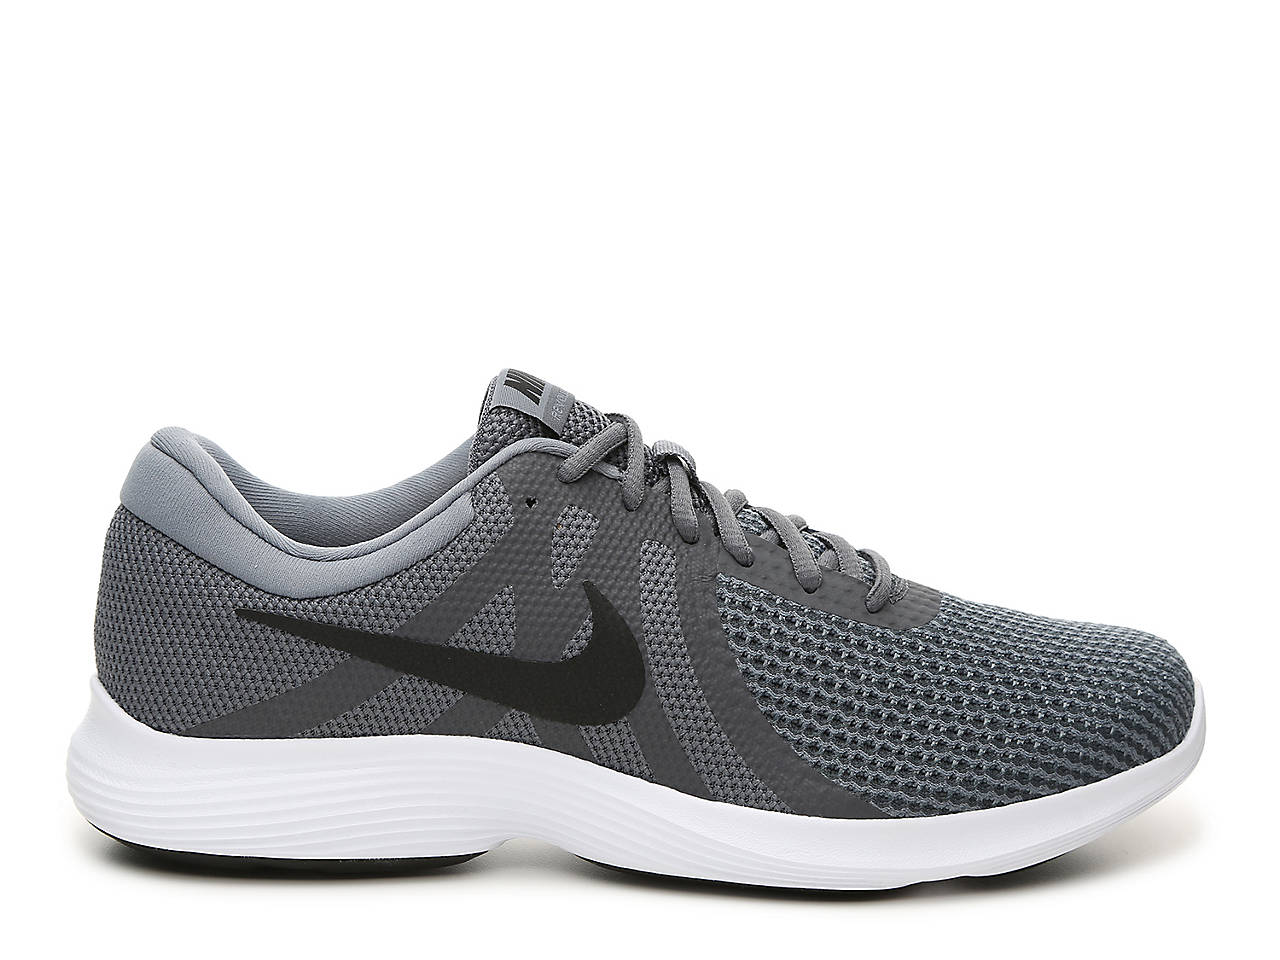 check out 742ea 23bd2 Nike. Revolution 4 Lightweight Running ...